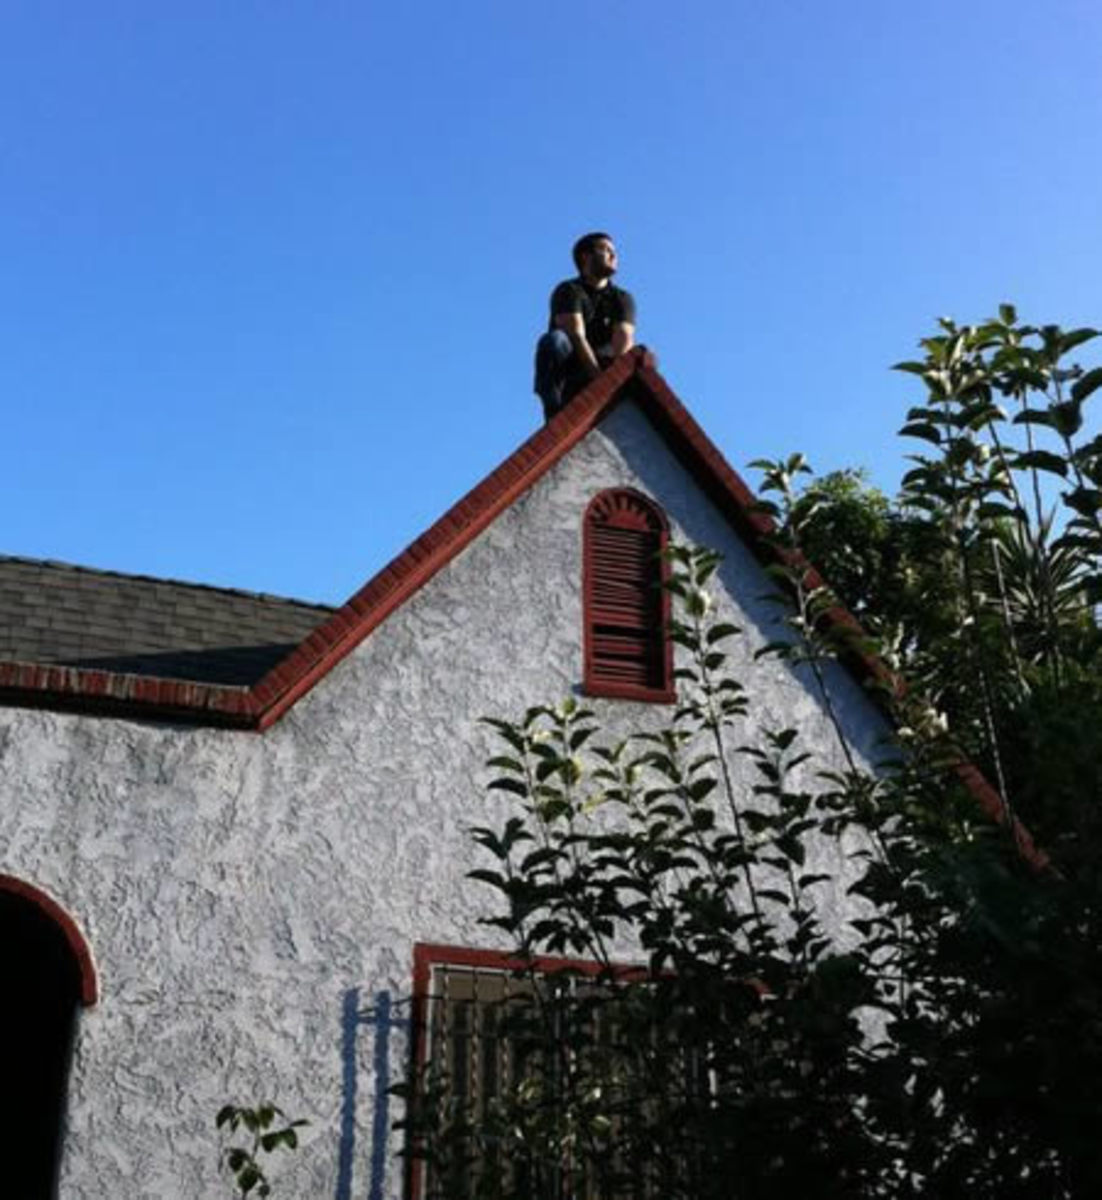 Owling on the roof of a house